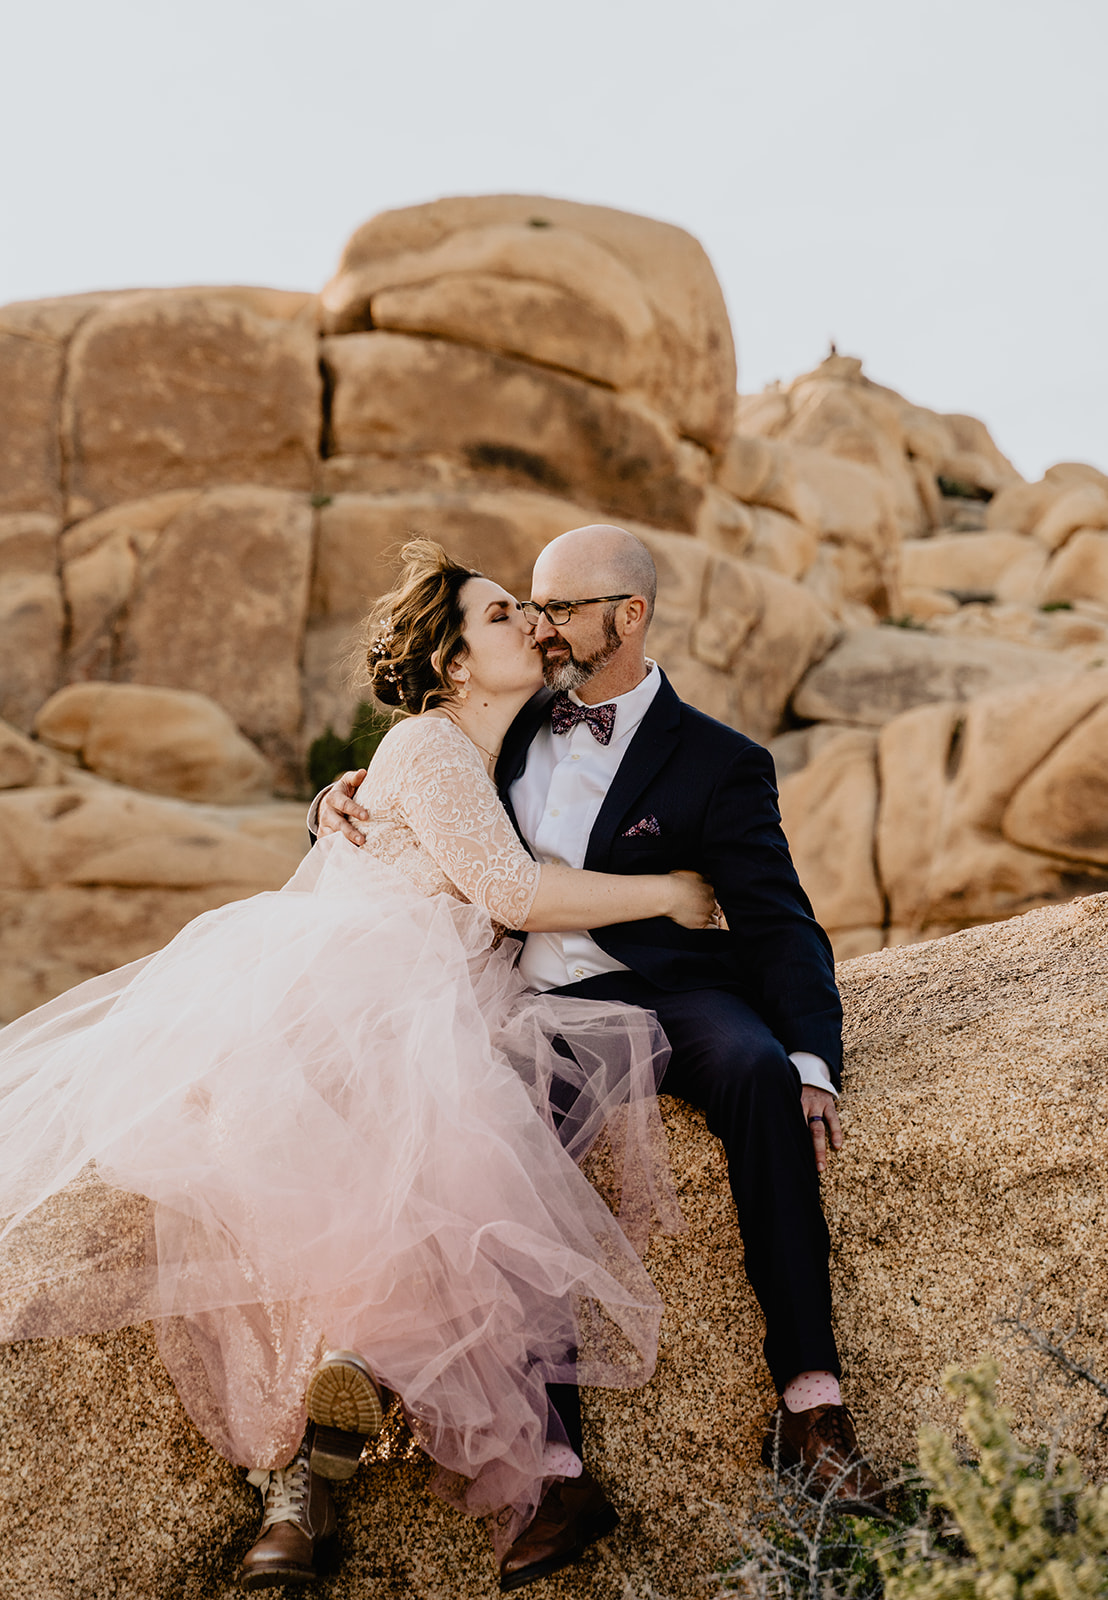 modern+candid+emotional+natural+wedding+elopement+photo+and+video+for+adventurous+wild+whimsical+madly+in+love+couples+destination+southern+California+socal+Los+Angeles